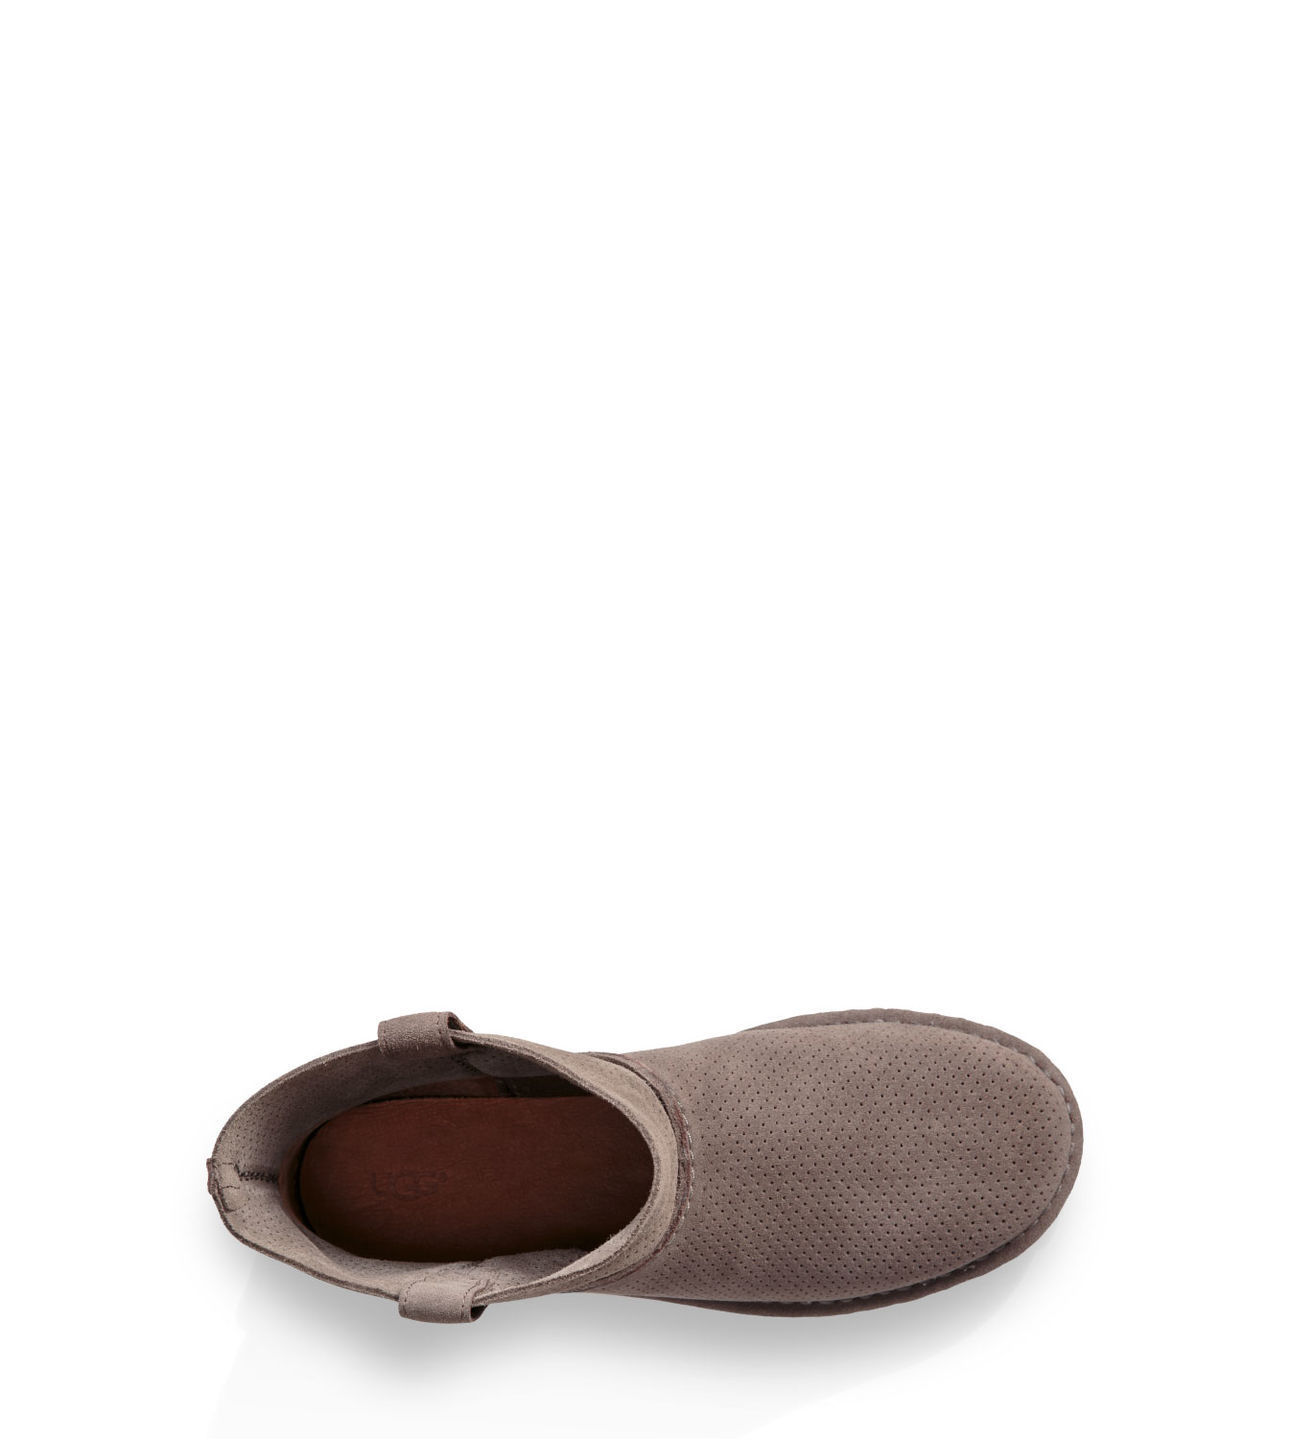 2e1ee798acd Ugg Women's Classic Unlined Mini Perf - Mole